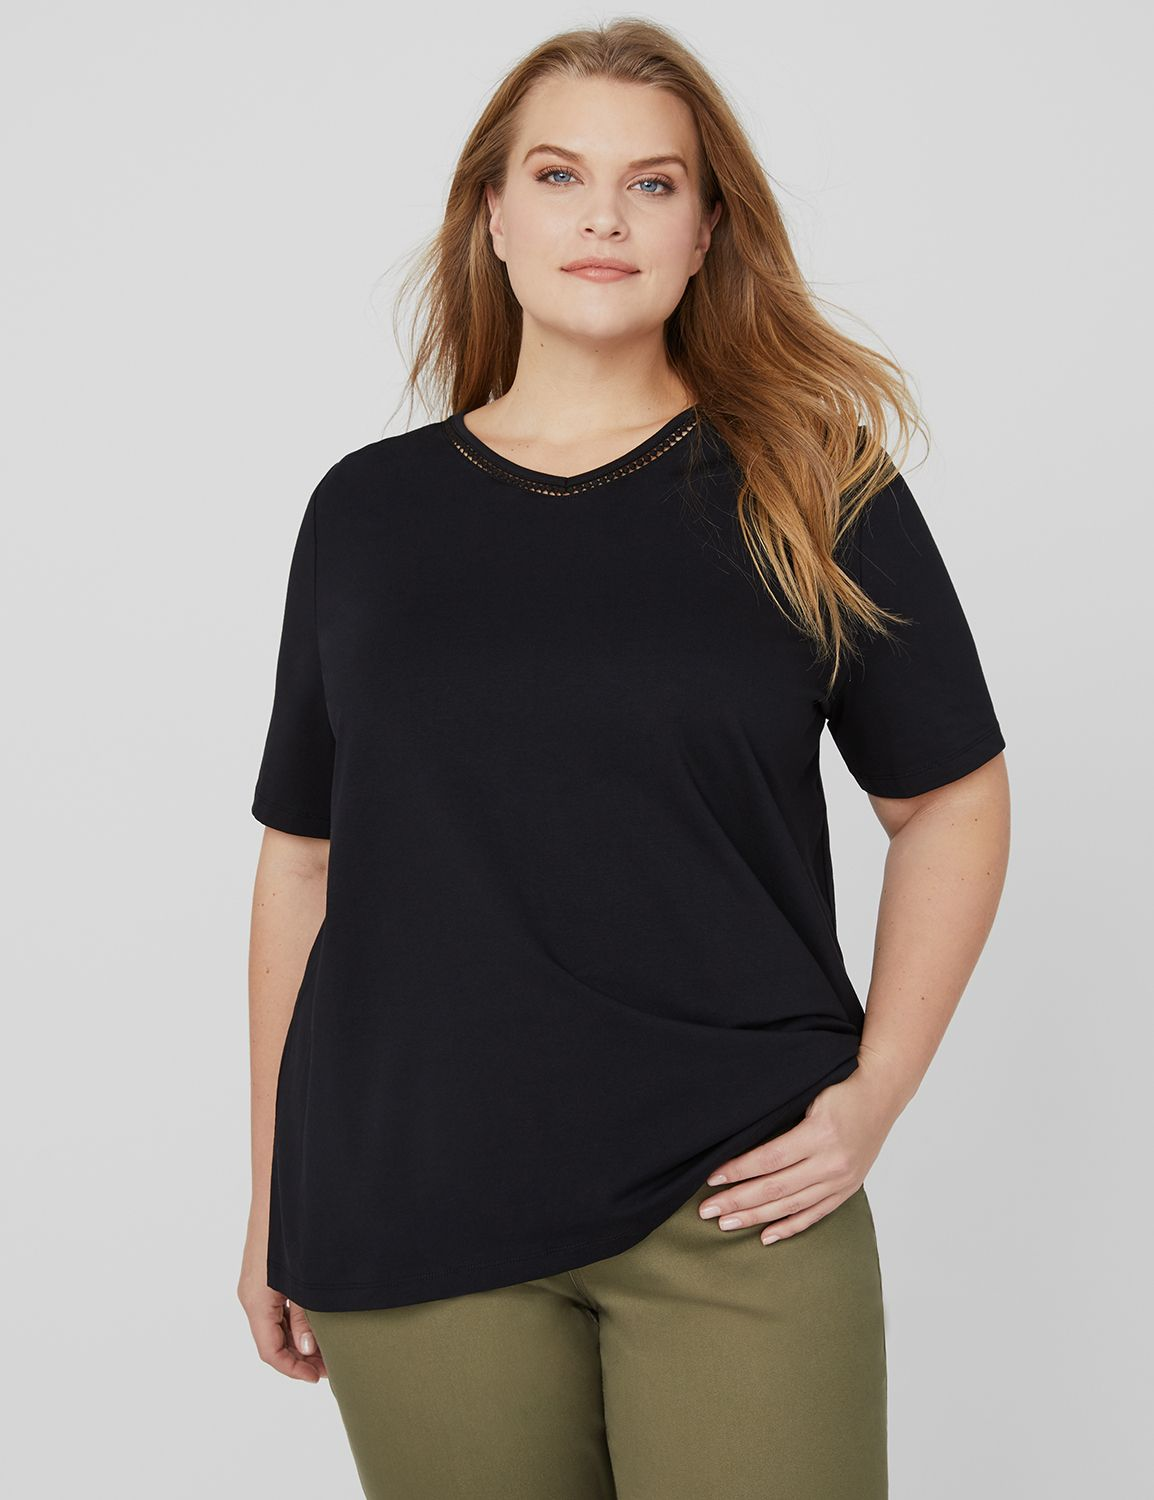 Suprema Lavish Tee 1087747 SS Basic Vneck with trim- S MP-300101149